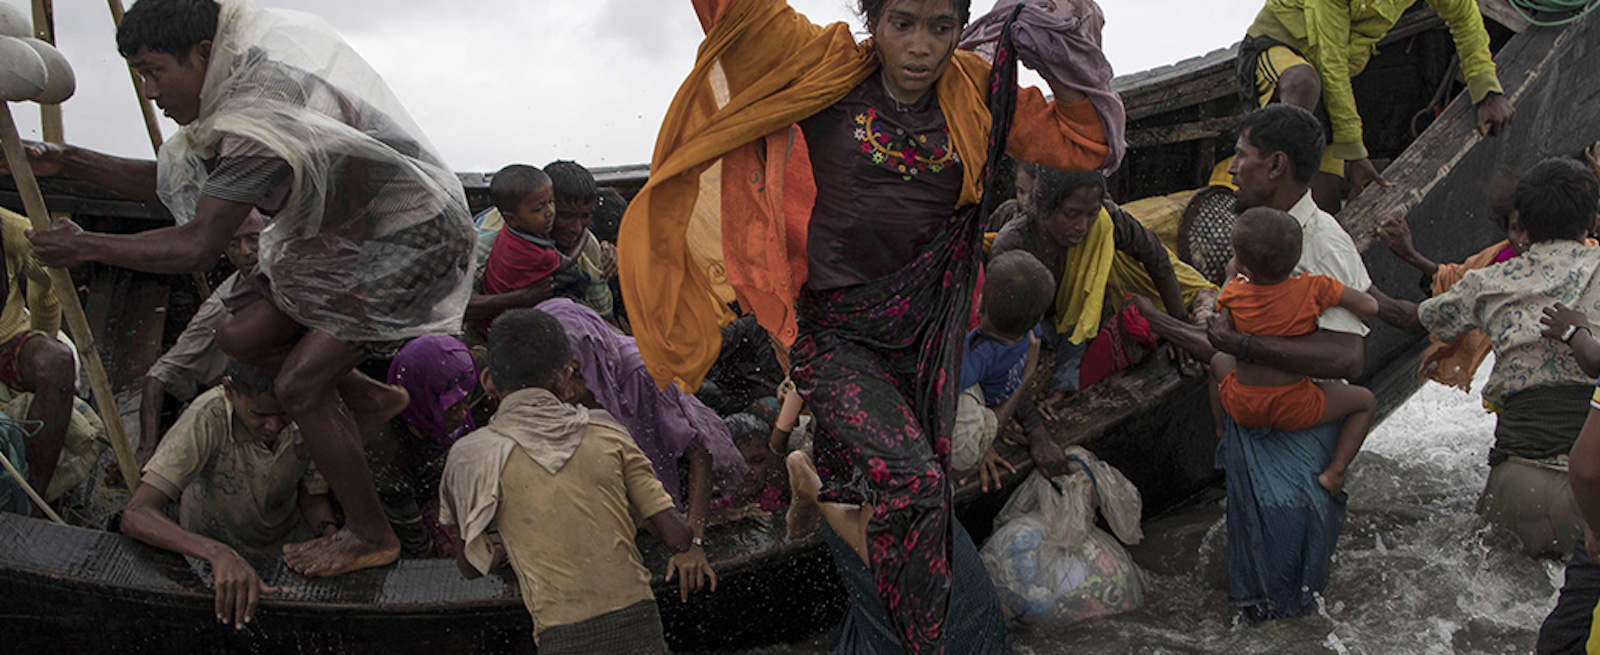 Rohingya refugees attempt to escape Myanmar (Photo: Jordi Bernabeu Farrús via Flickr)